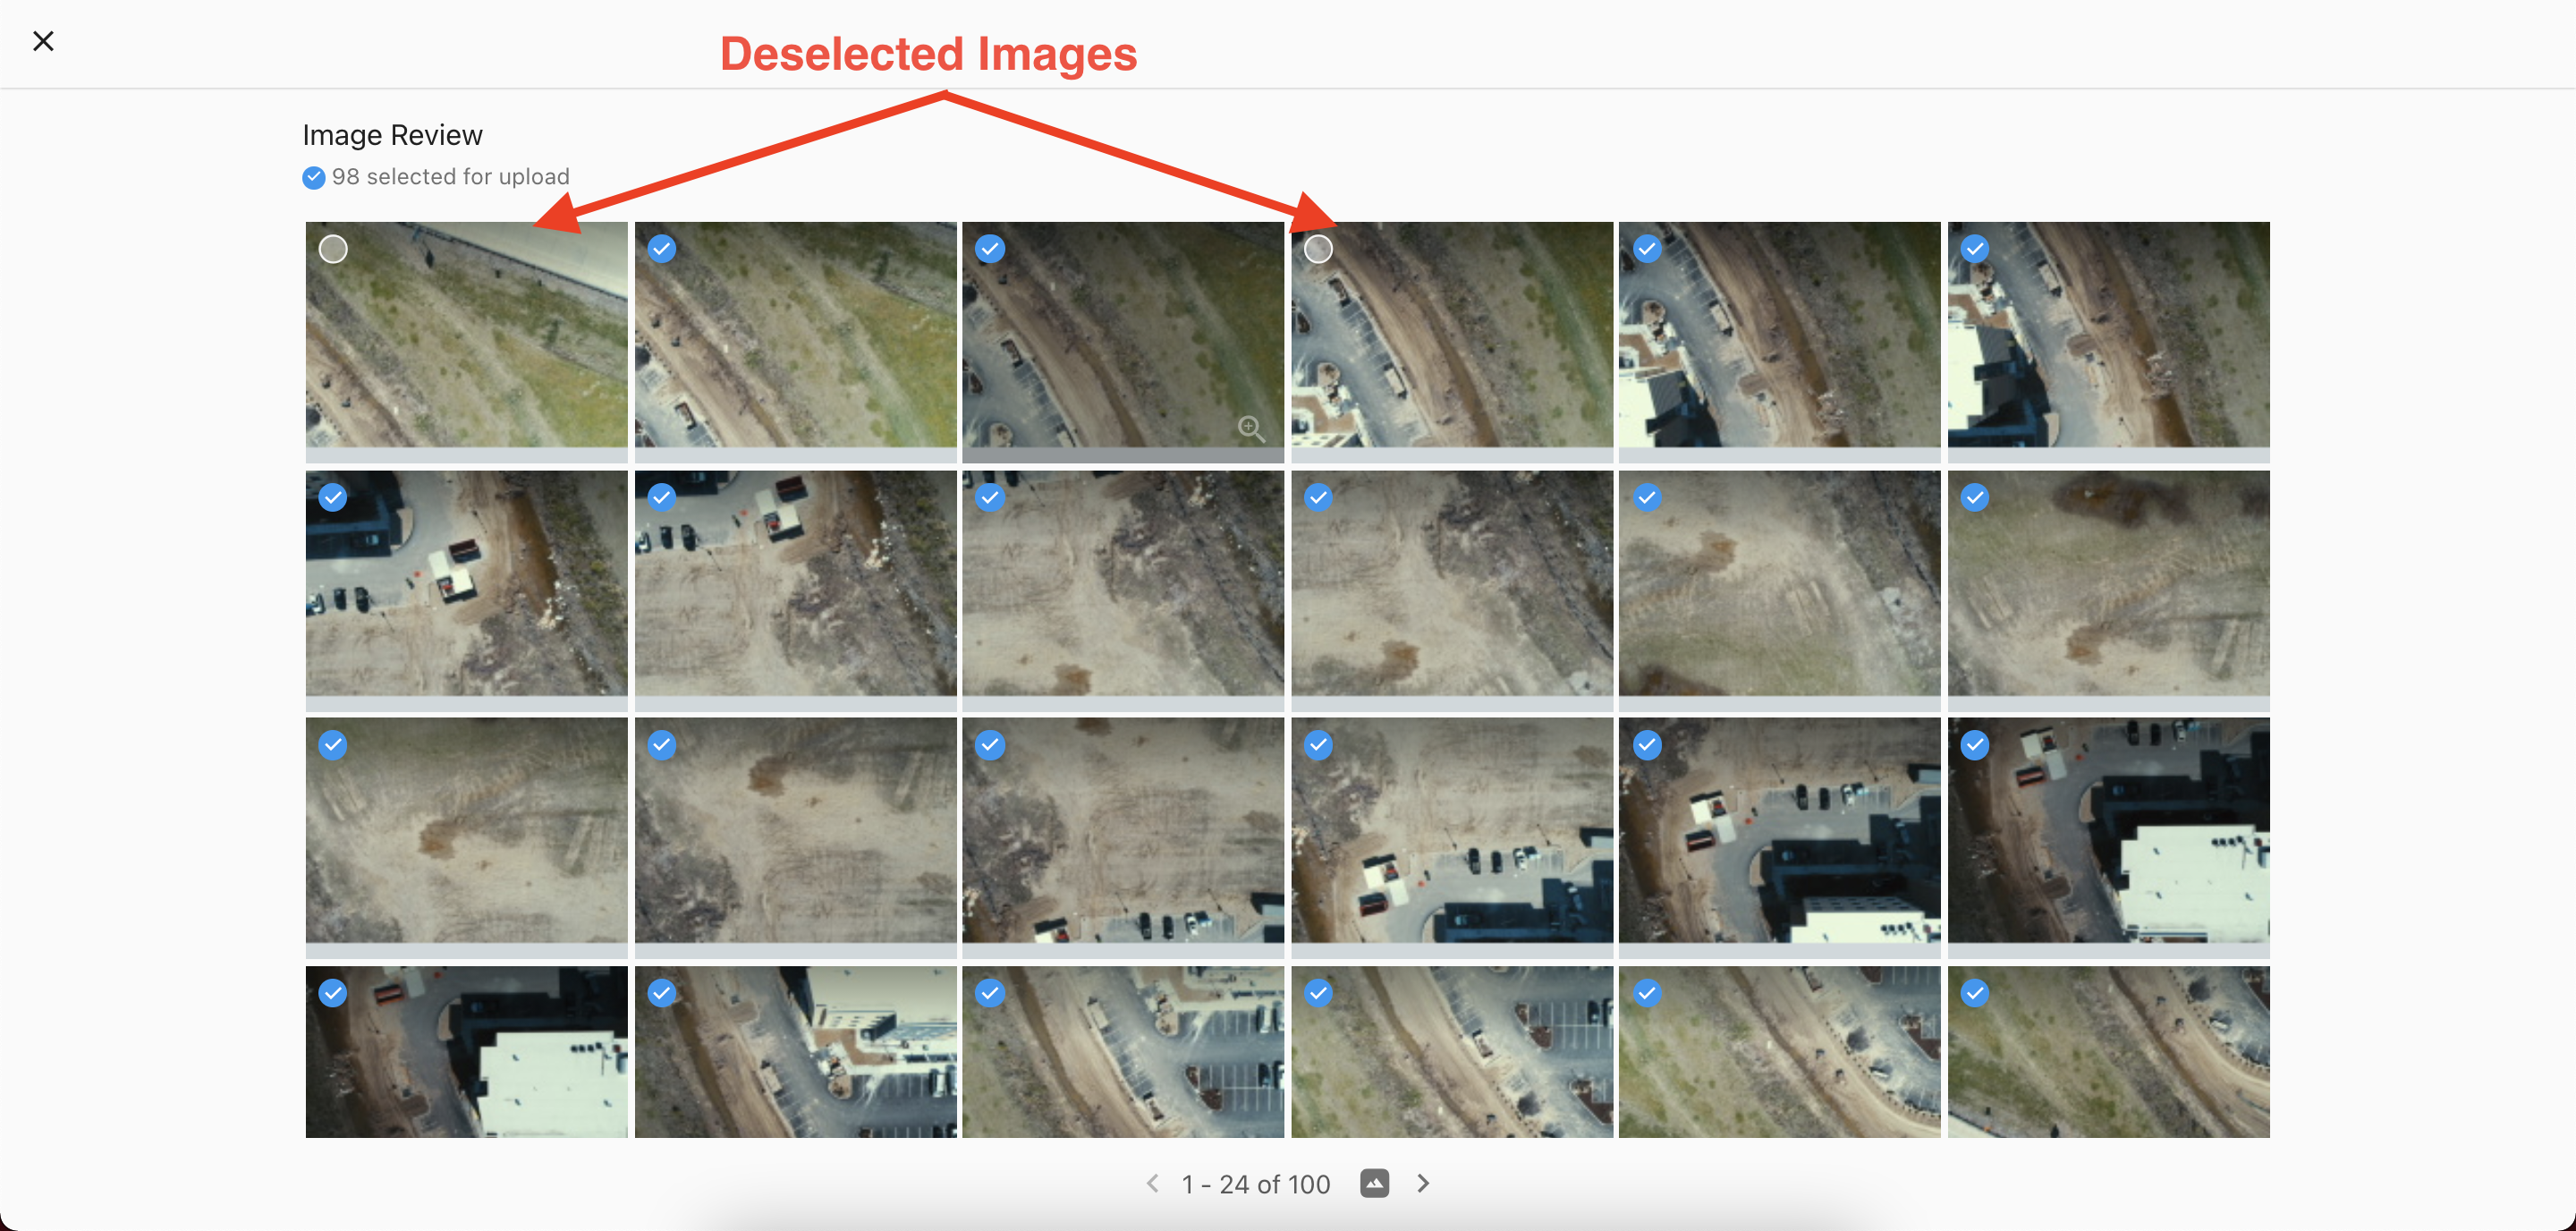 The Image Review Window allows you to view the images and deselect images.